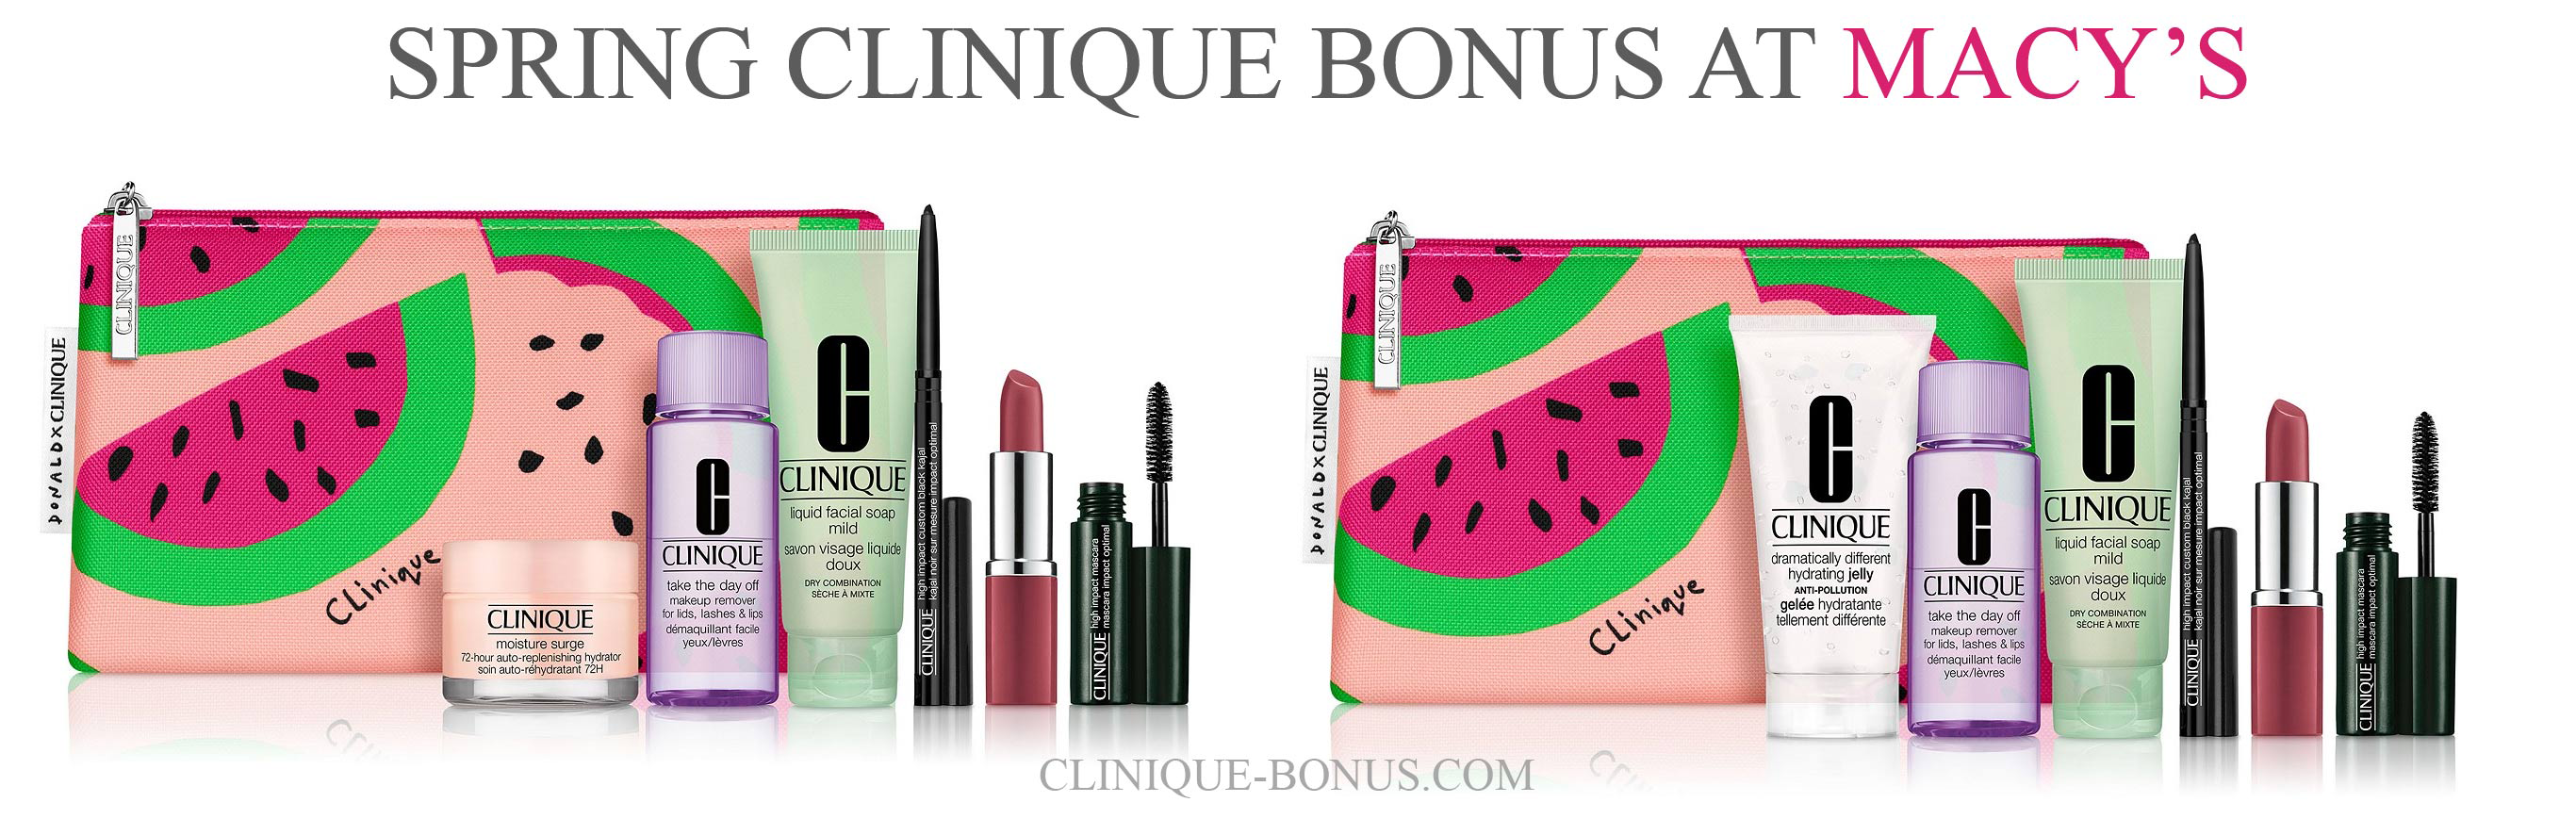 Pin on Clinique Bonus Time